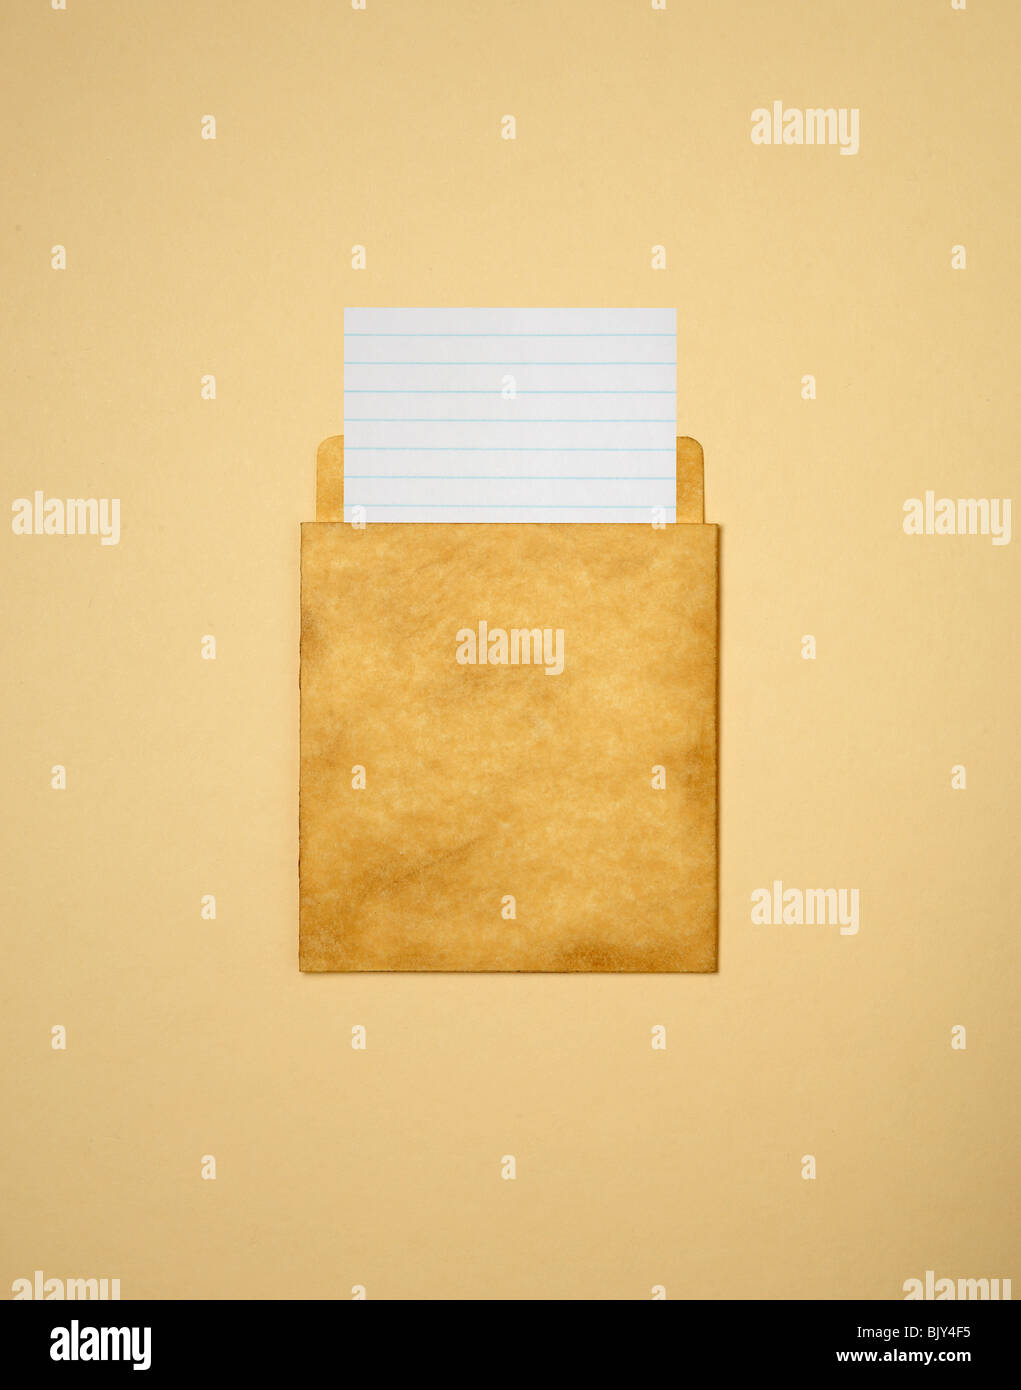 A  blank library card and pocket from a book - Stock Image